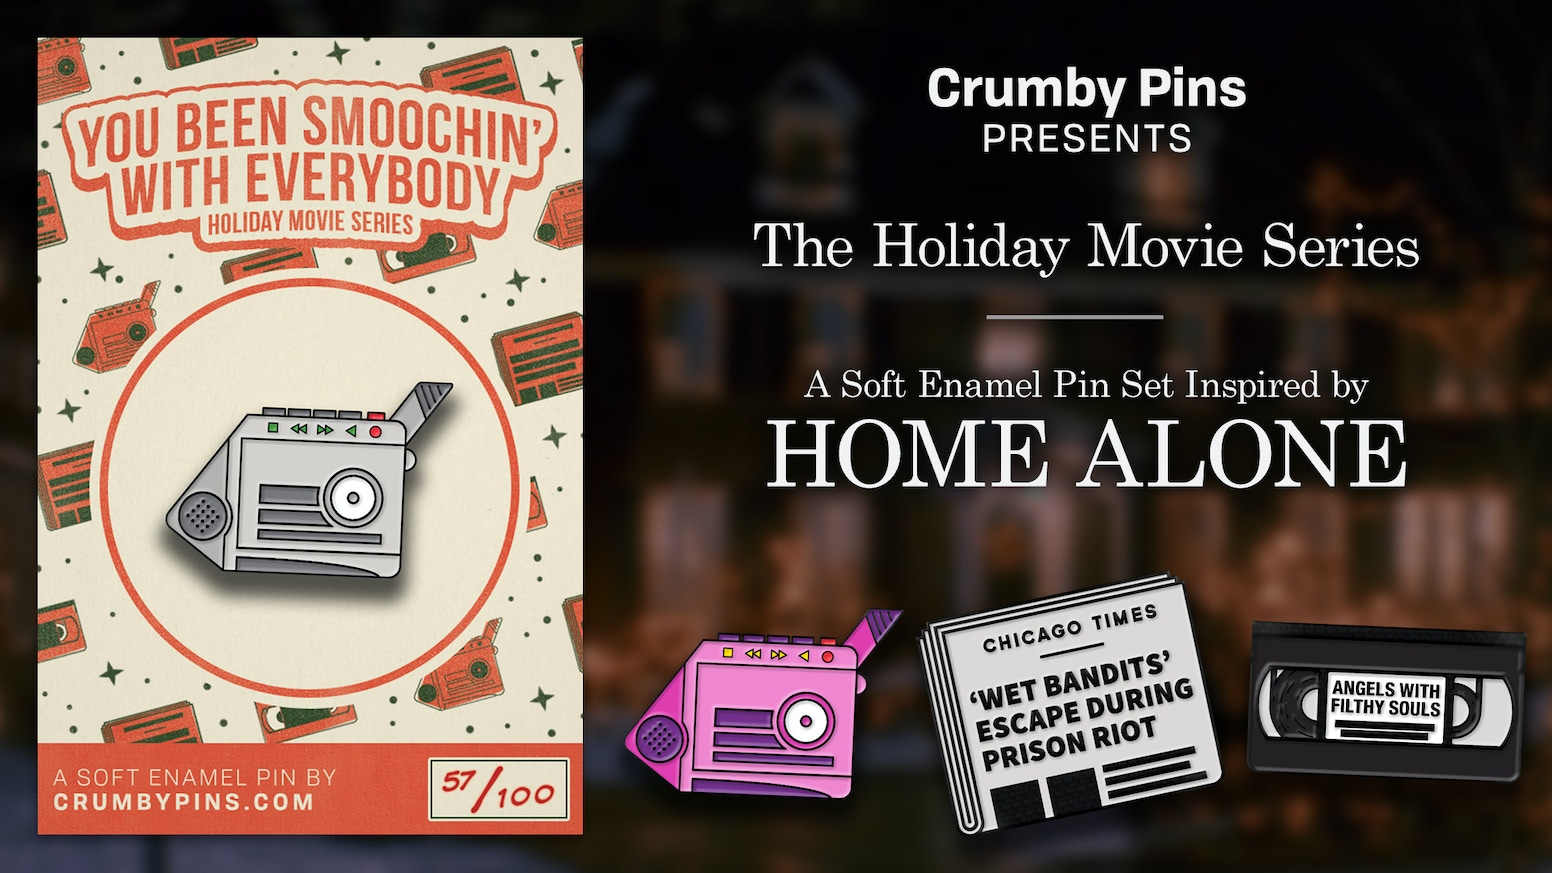 Soft enamel pins based on and inspired by classic Christmas movies. First up: Home Alone. Credit card? You got it!